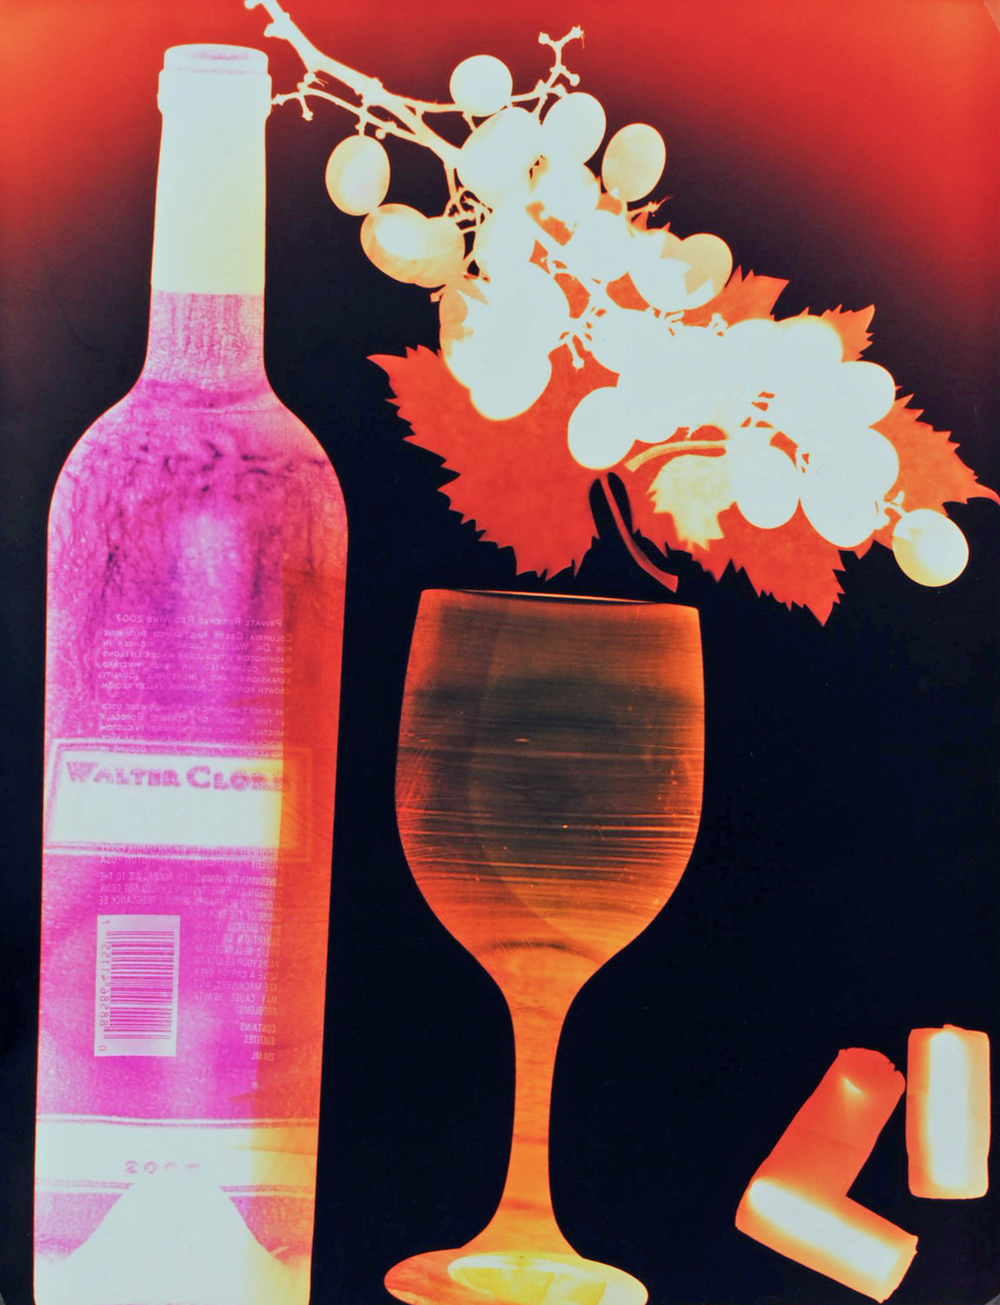 W31 Walter Clore Natasha Bacca photo wine art glass bottle grapes cork pink orange white black.JPG